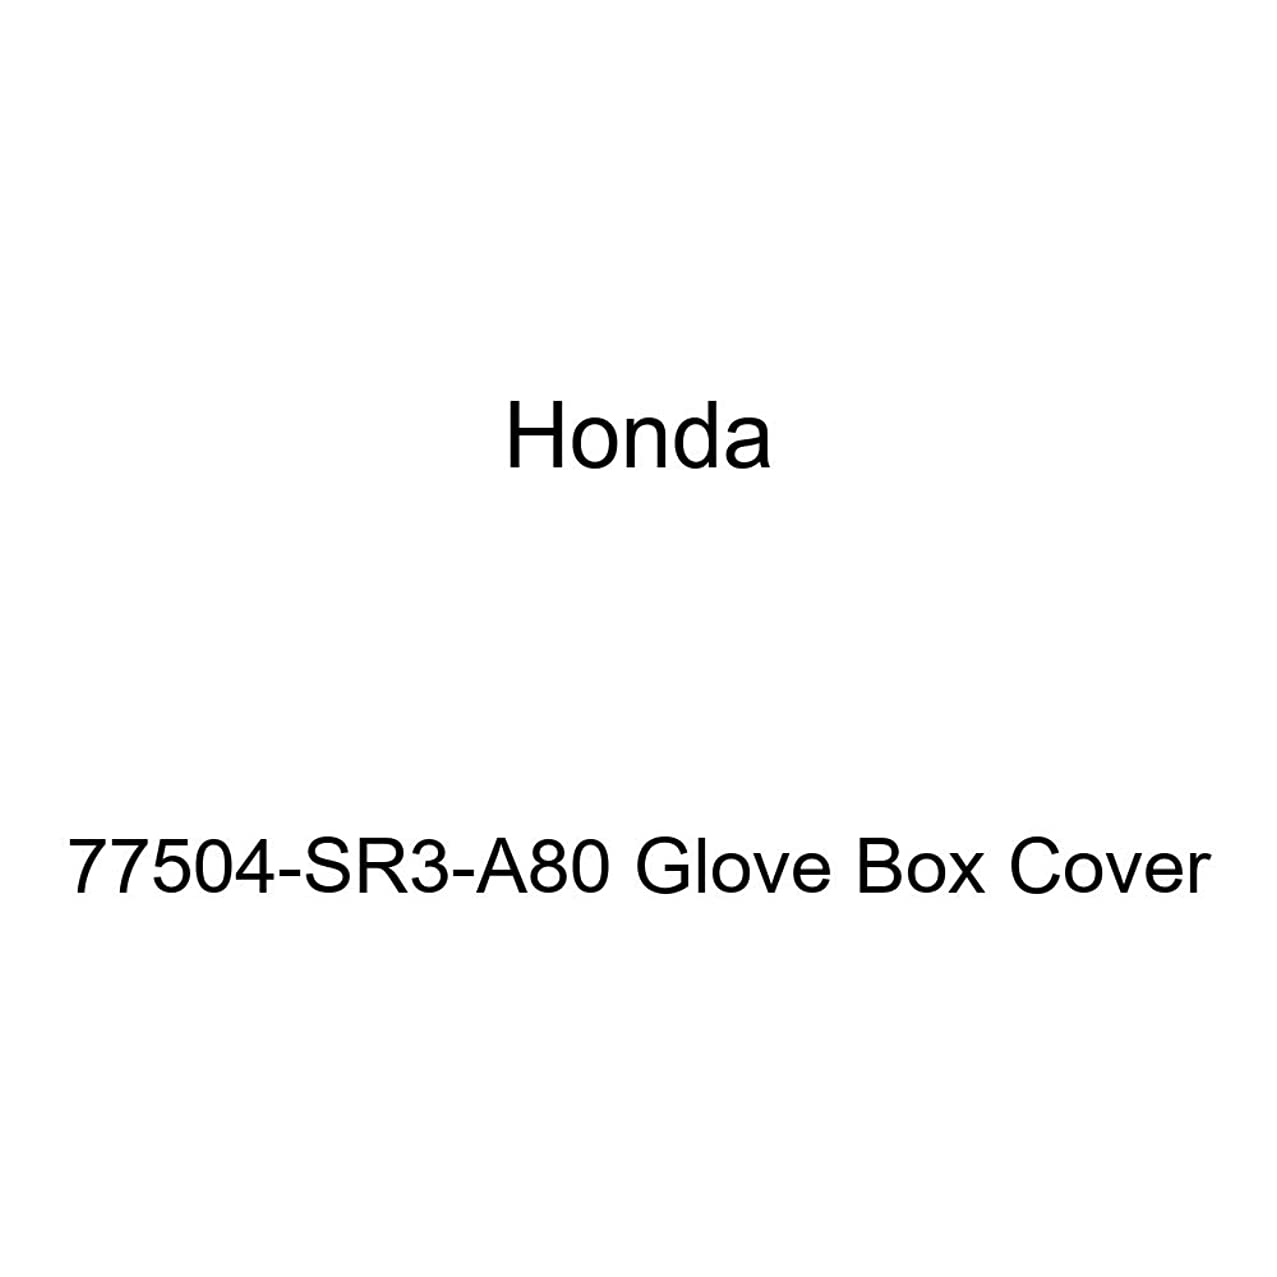 Honda Genuine 77504-SR3-A80 Glove Box Cover